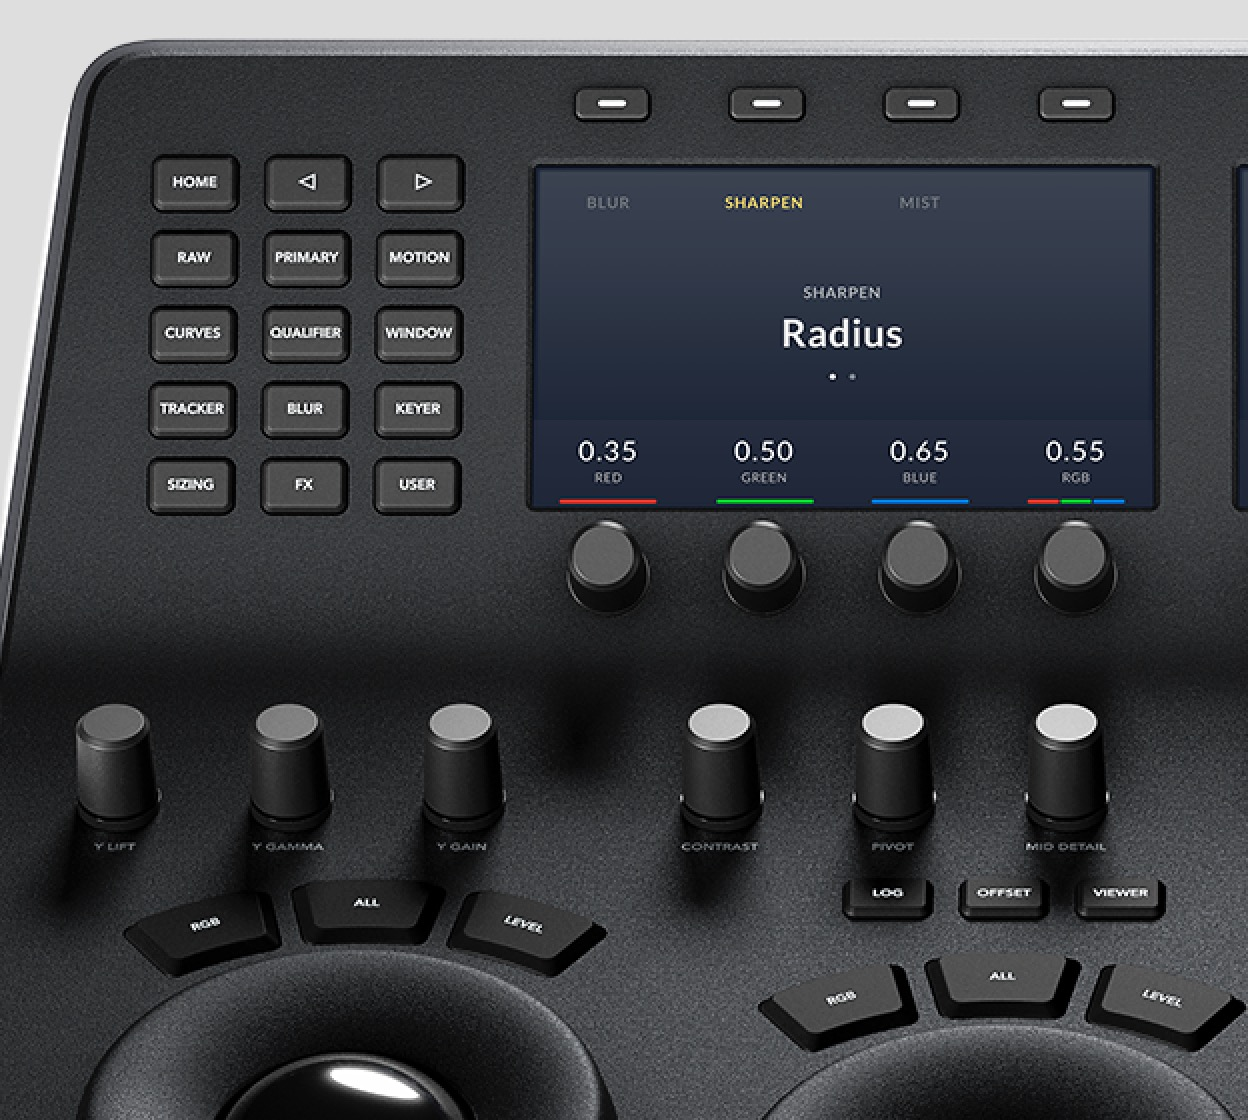 Blackmagic Design introduces two new color grading panels for DaVinci Resolve 4